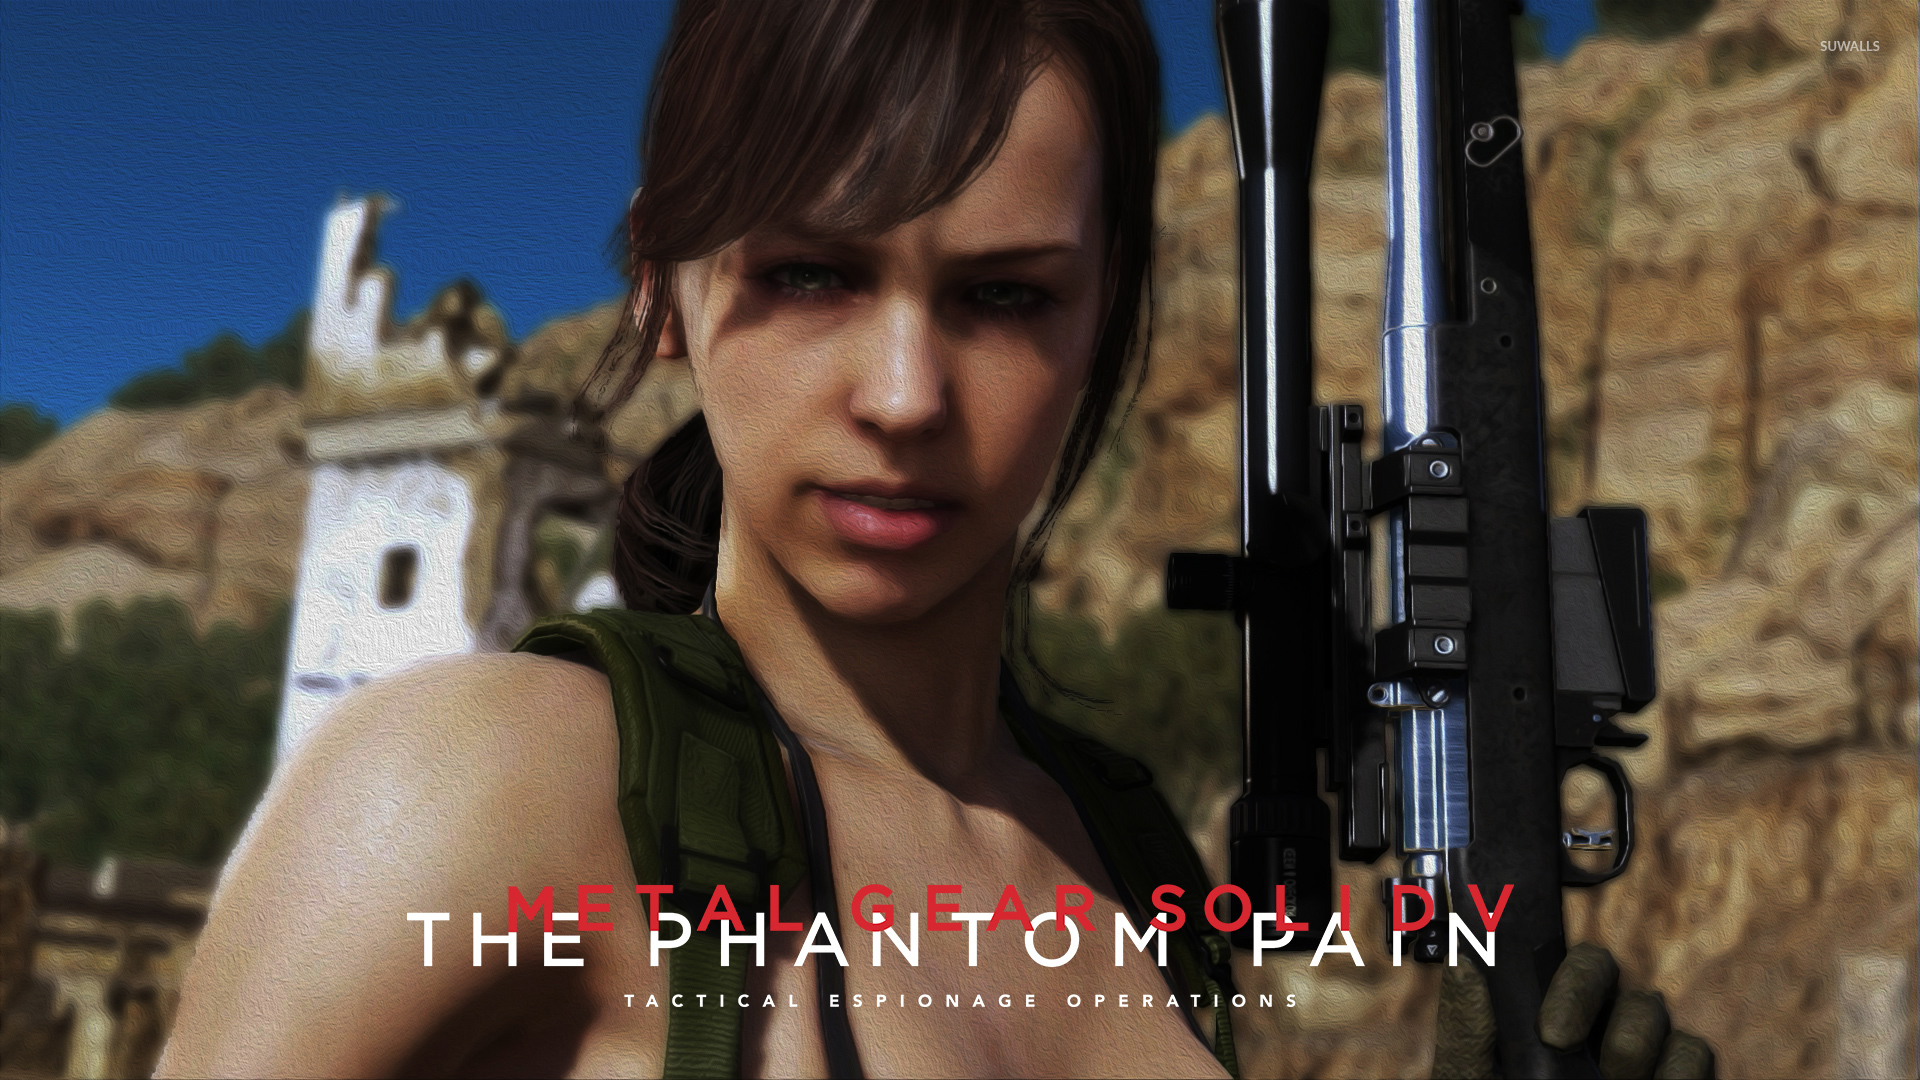 Quiet Metal Gear Solid V The Phantom Pain Wallpaper Game